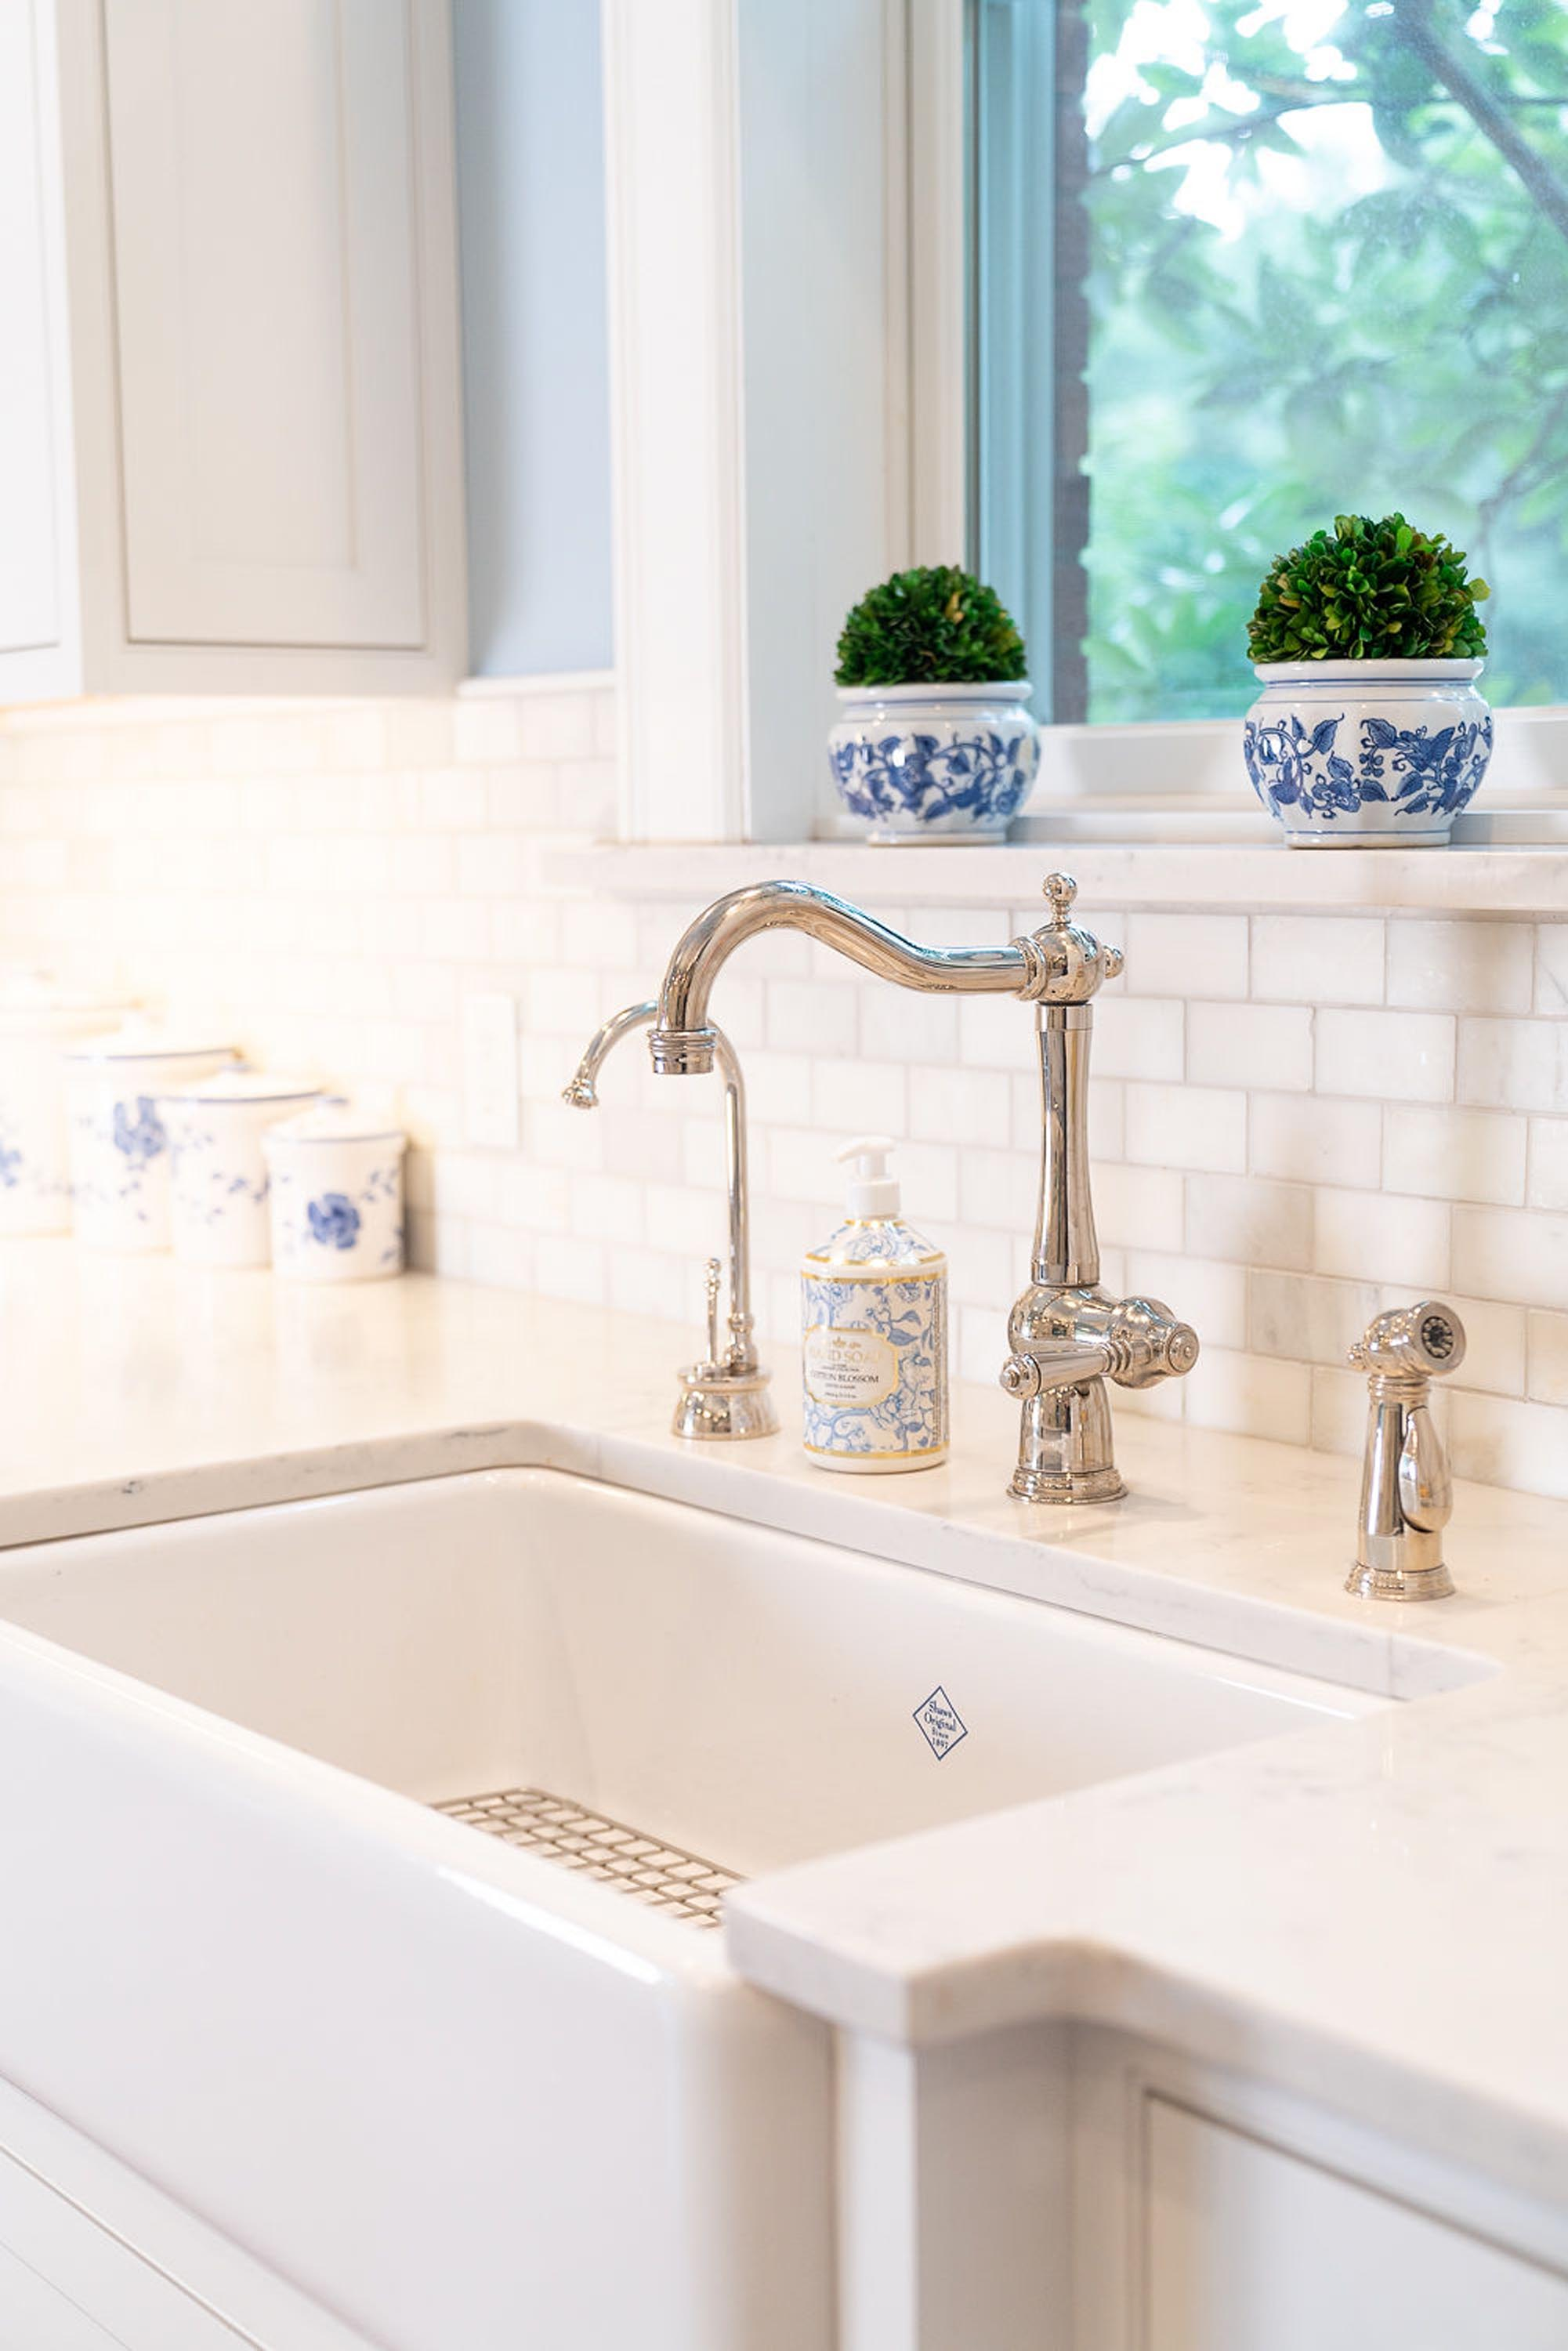 White kitchen sink and stainless faucet